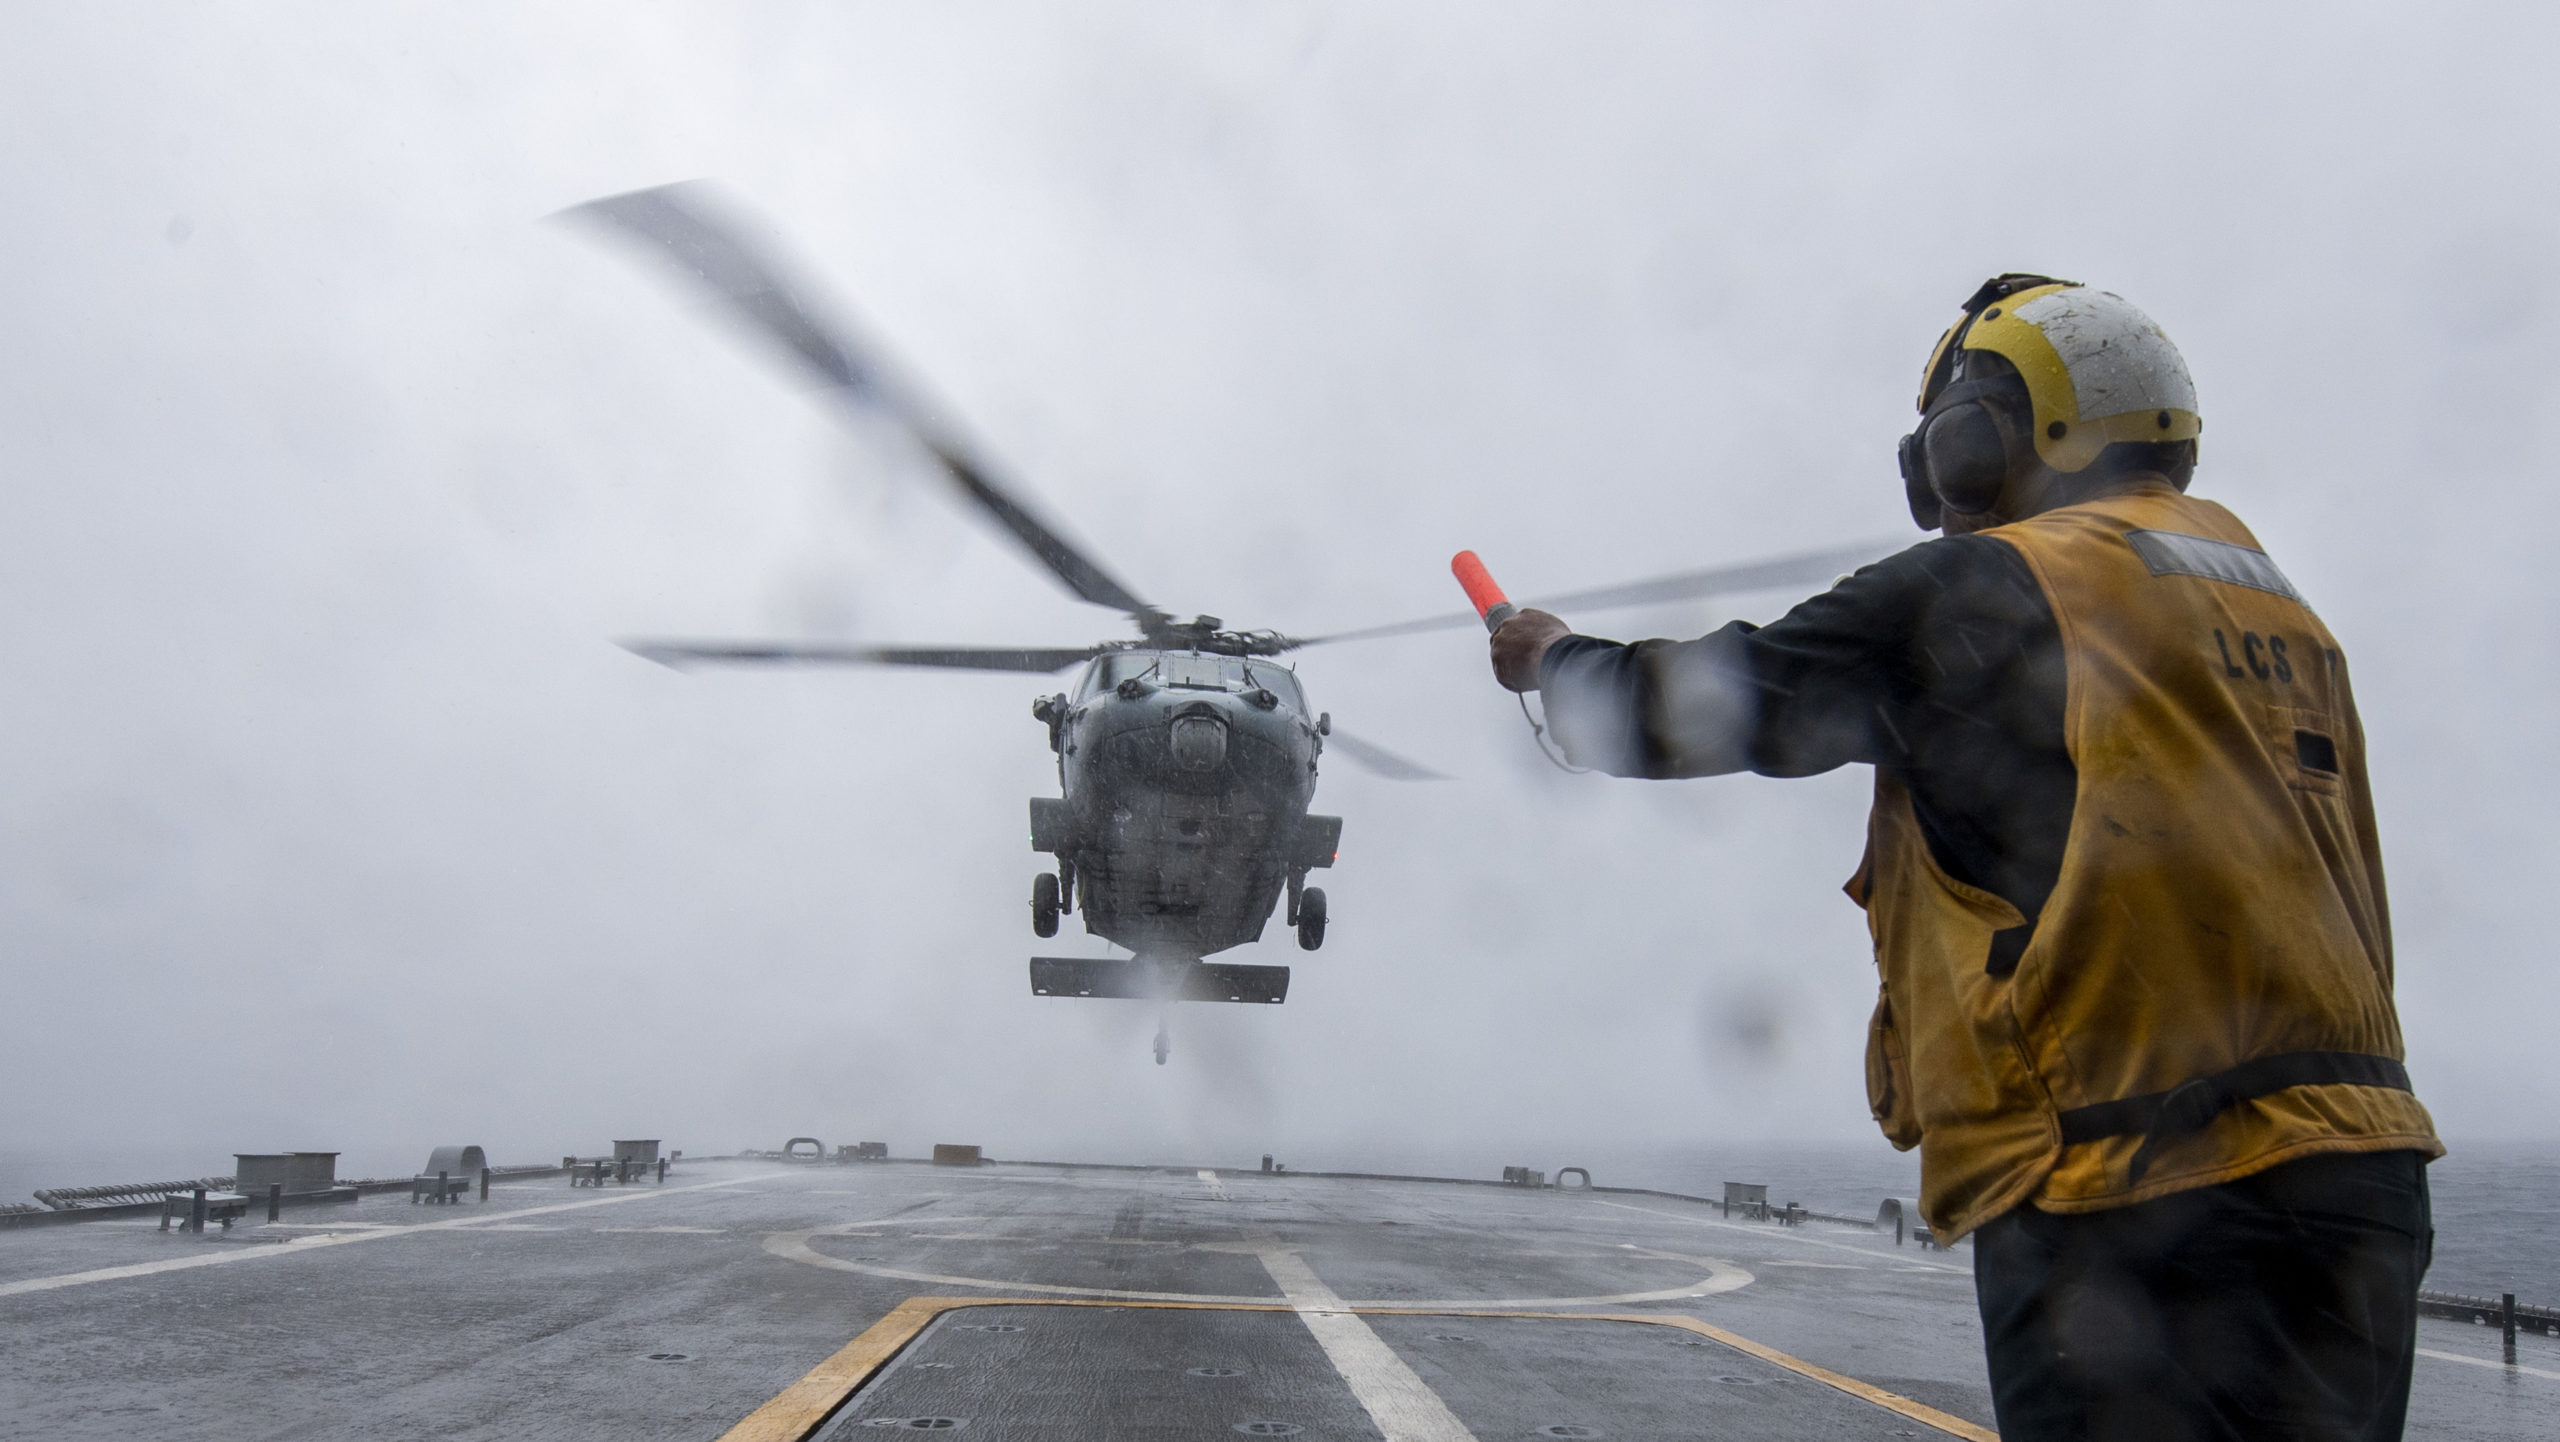 The Pic of the Day: Seahawk Landing | SOFREP